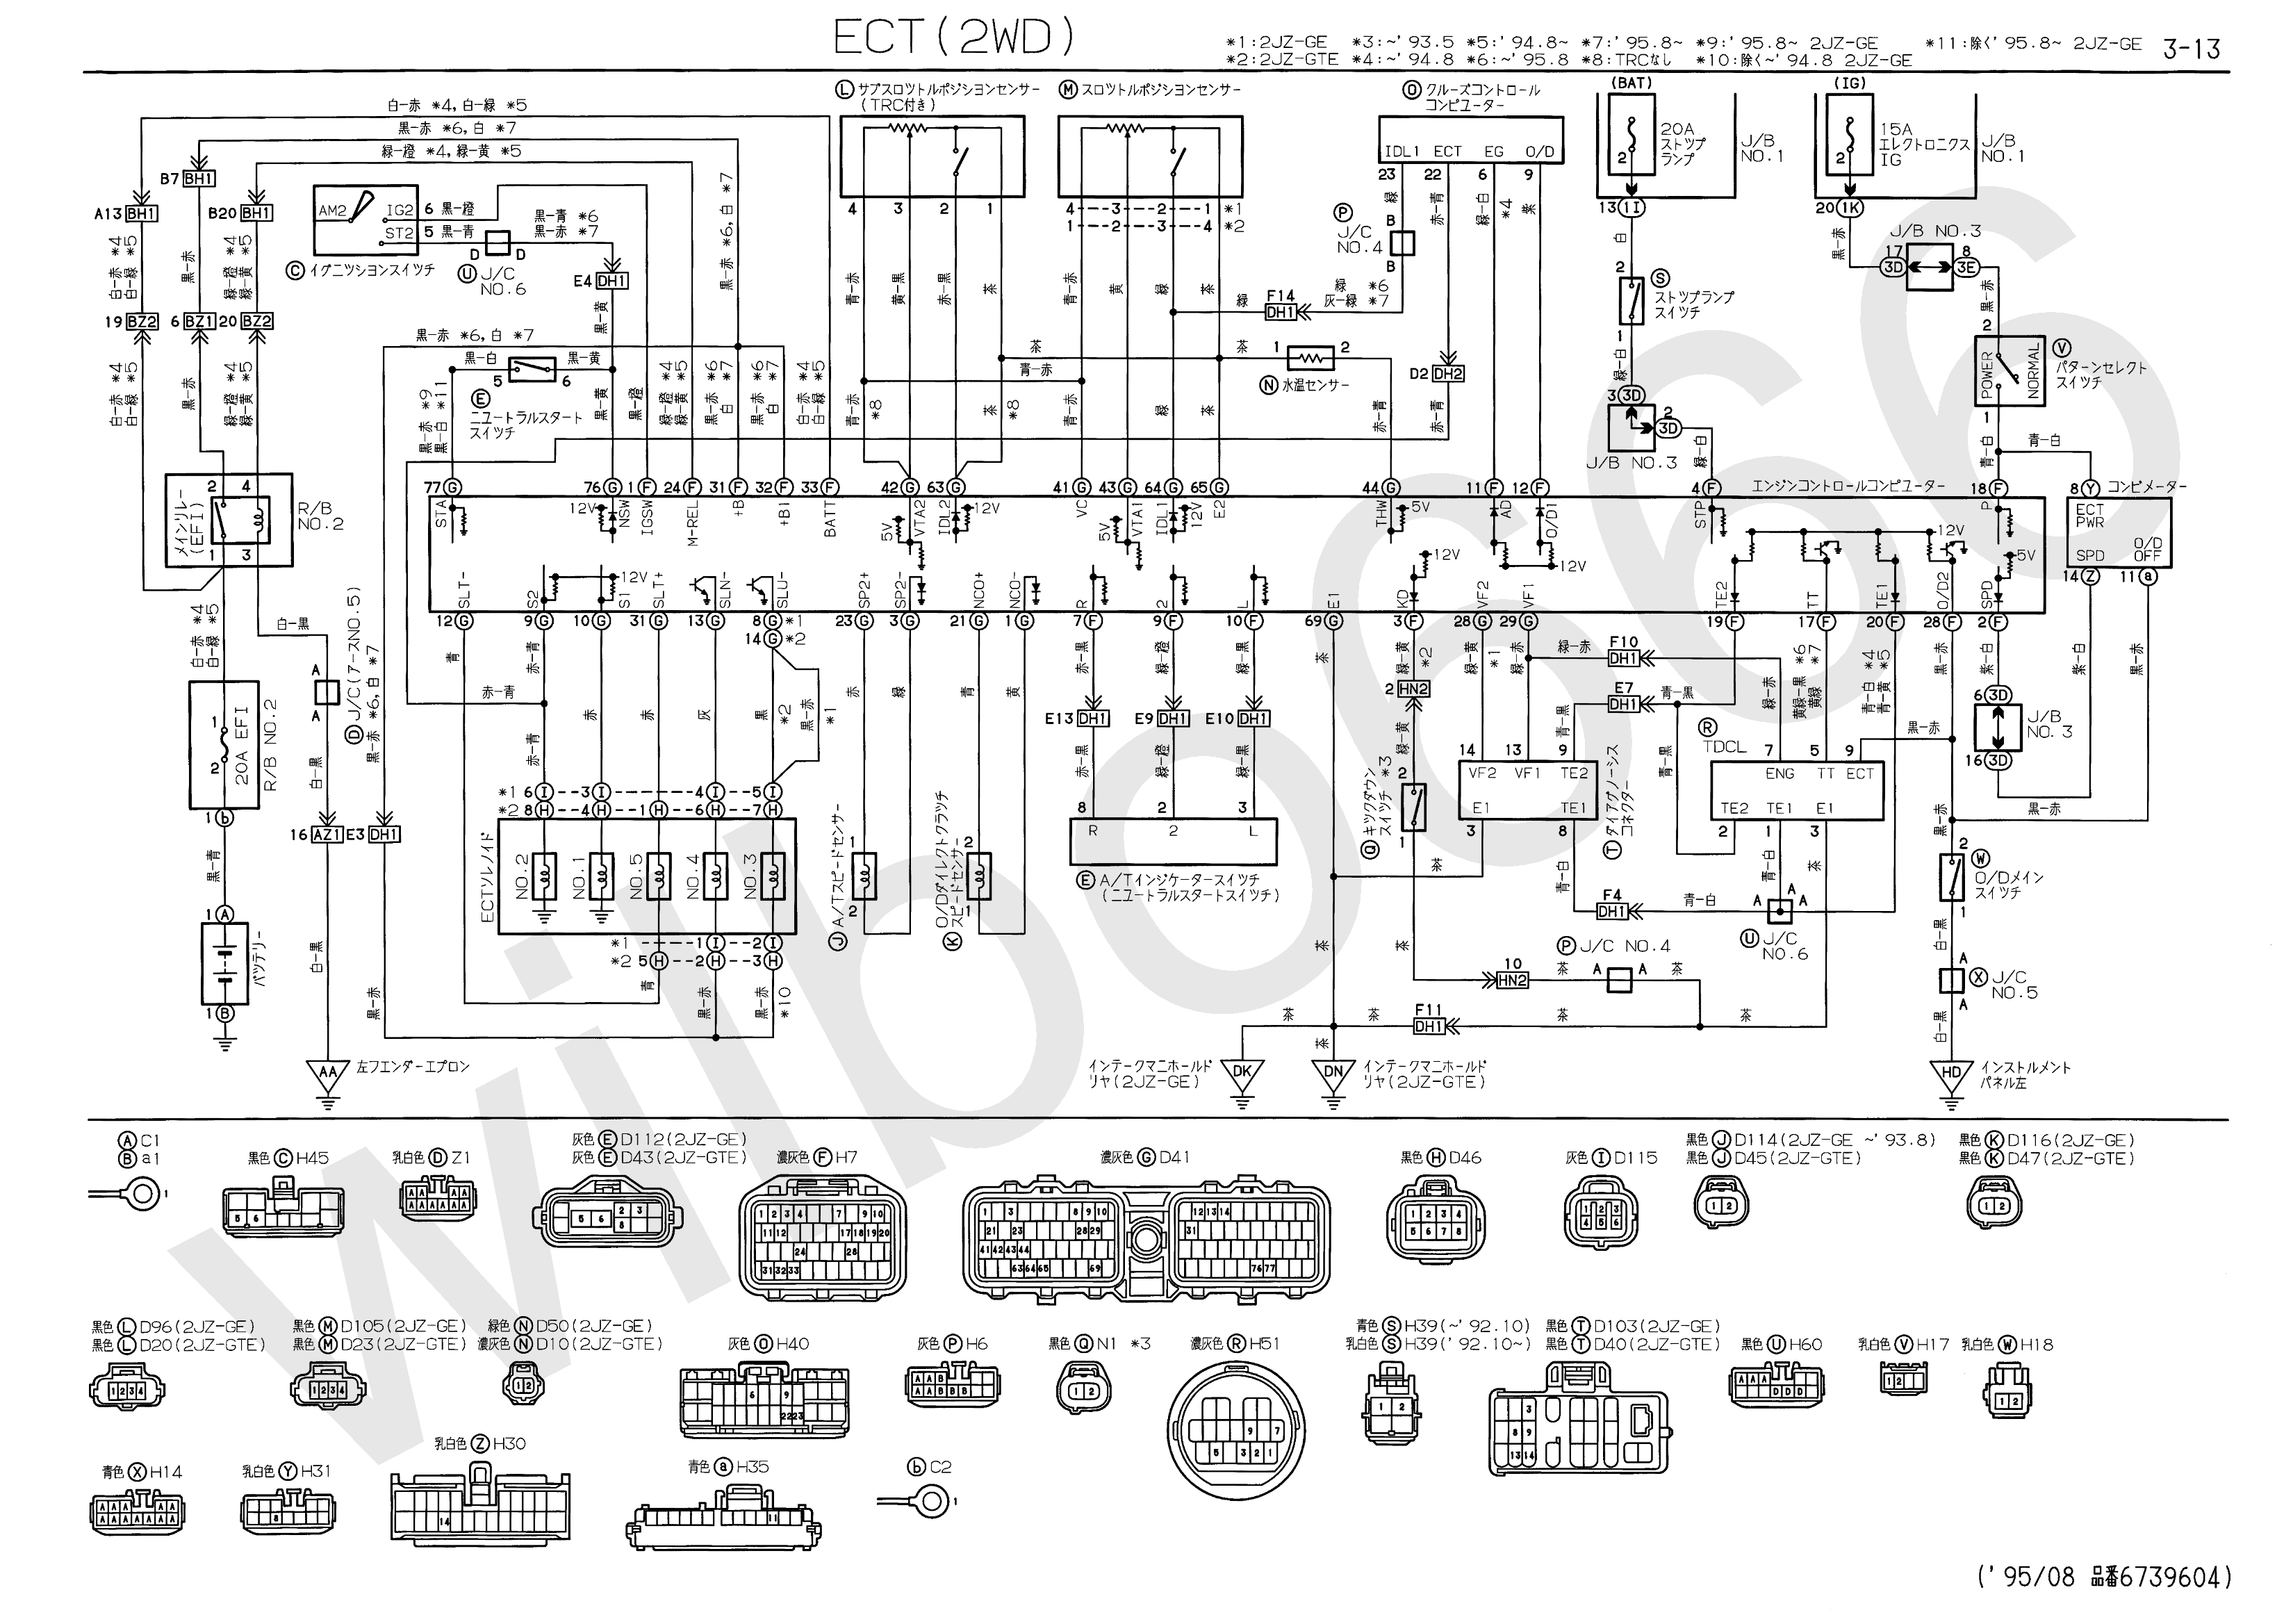 2006 honda civic stereo wiring diagram 2006 discover your wiring 95 mitsubishi eclipse fuse location infiniti fx35 headlight wiring diagram